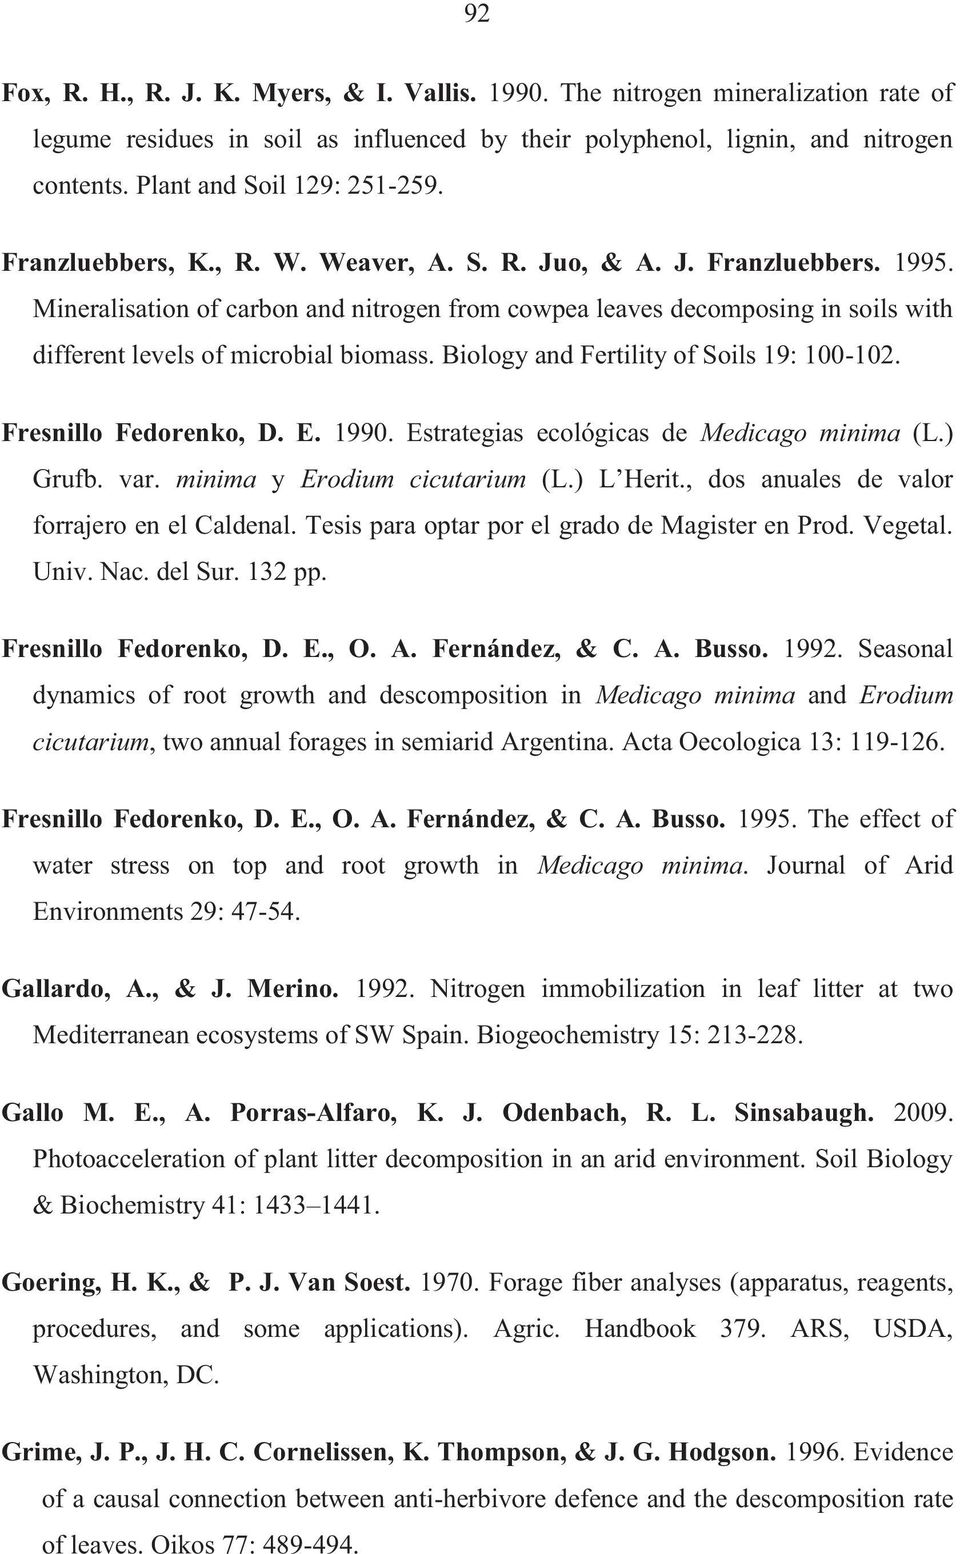 Mineralisation of carbon and nitrogen from cowpea leaves decomposing in soils with different levels of microbial biomass. Biology and Fertility of Soils 19: 100-102. Fresnillo Fedorenko, D. E. 1990.